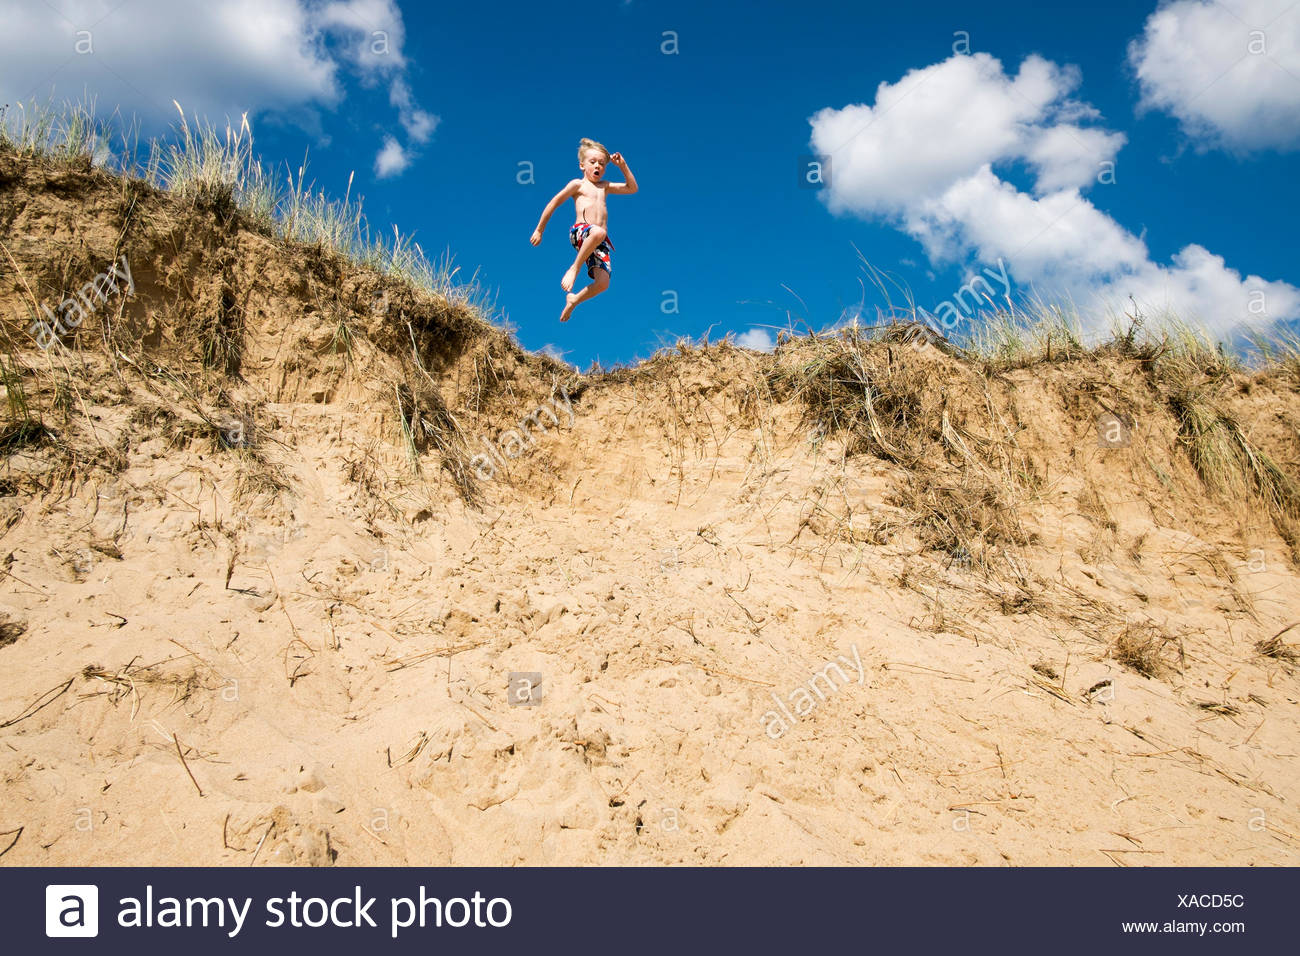 Sweden, Halland, Halmstad, Tylosand, Boy (6-7) jumping from sandy precipice - Stock Image